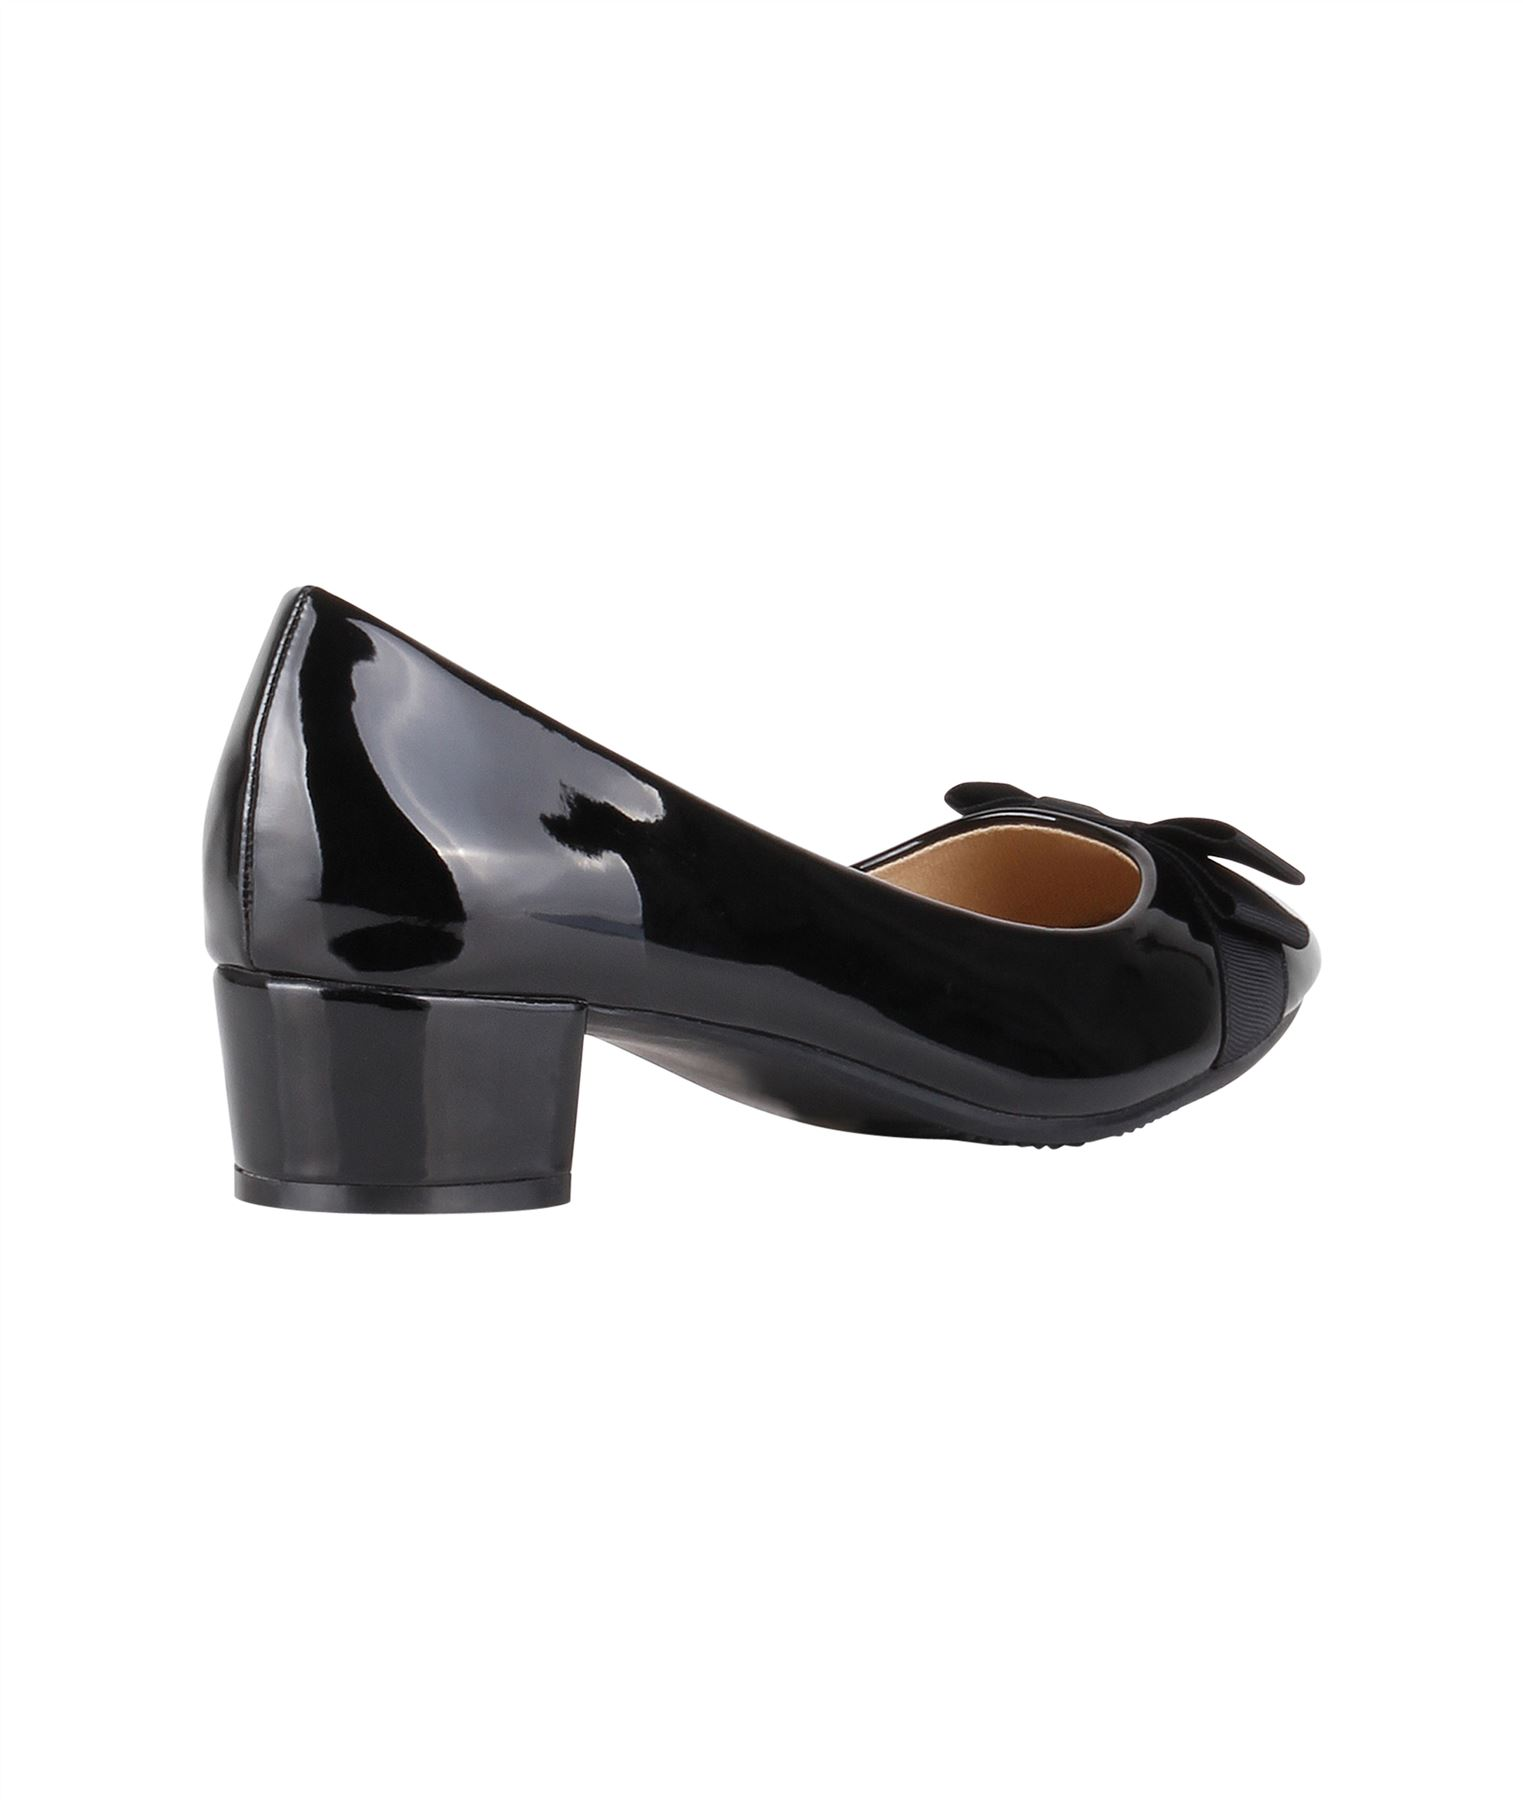 2541730bb4c Details about Womens Low Block Heel Court Shoes Bow Ladies Work Party  Ballerina Casual Pumps